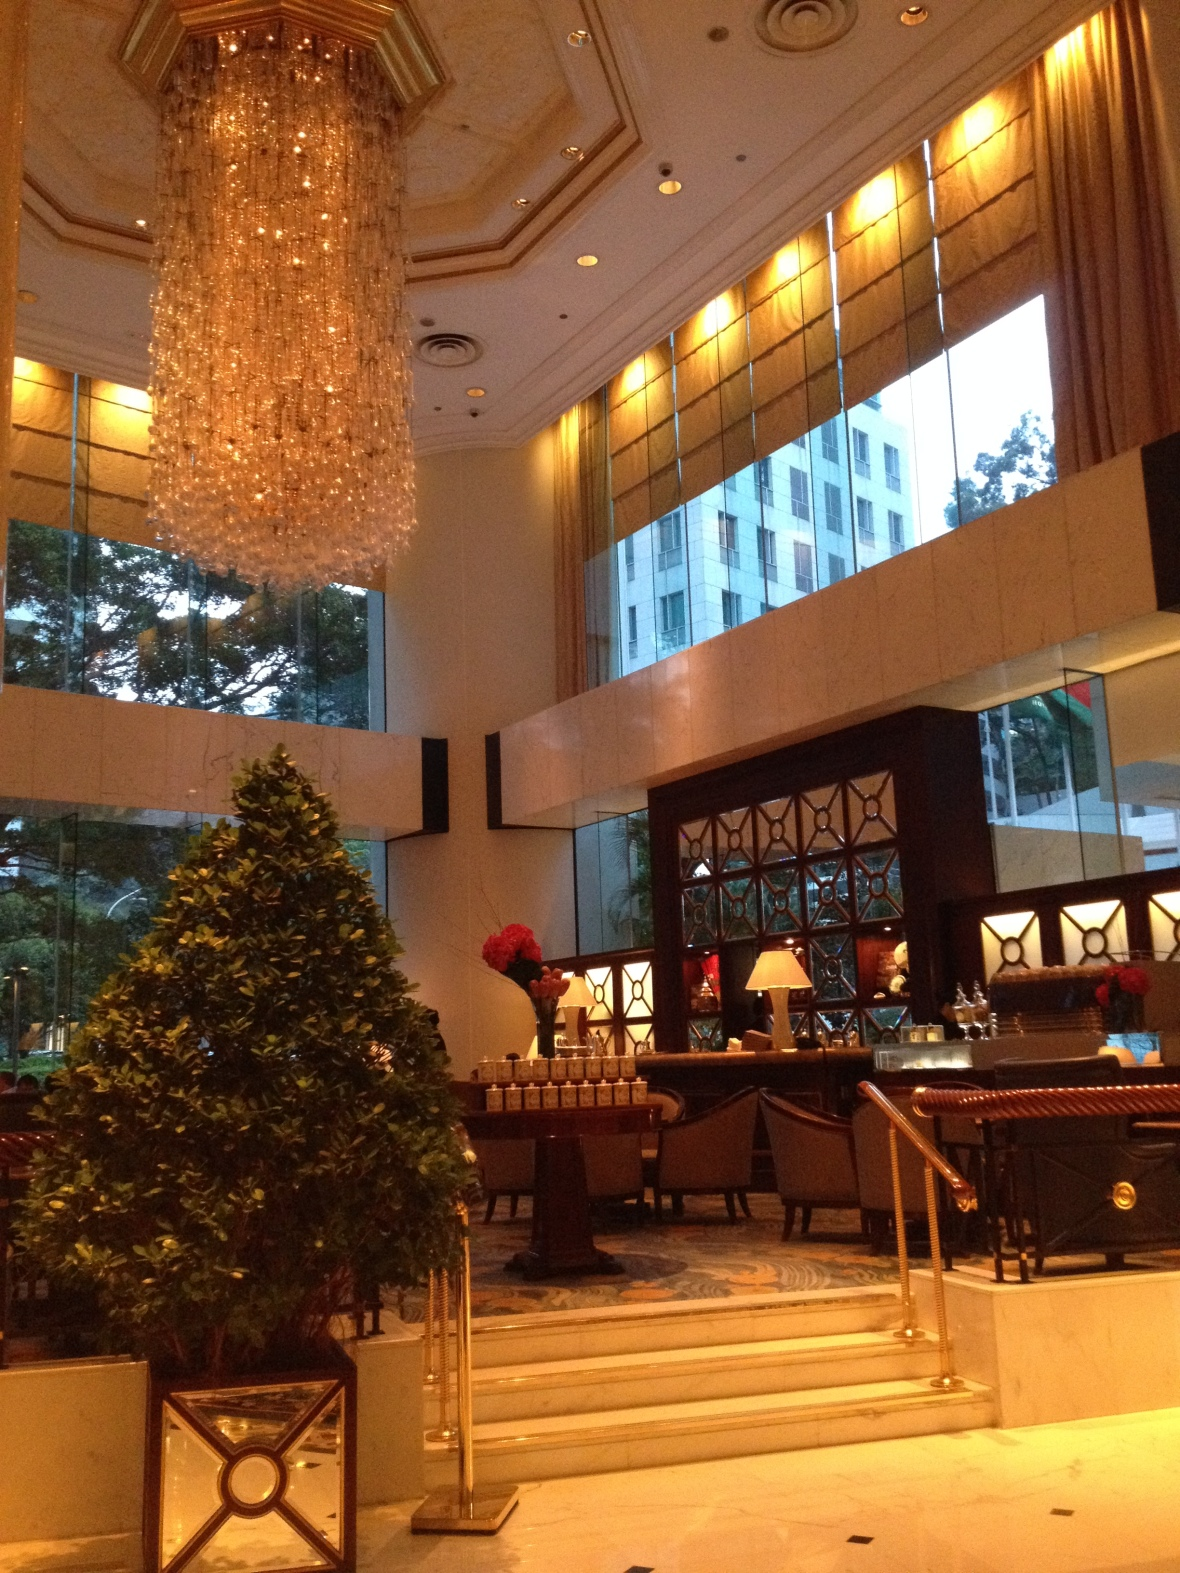 Island Shangri La Hong Kong - the setting